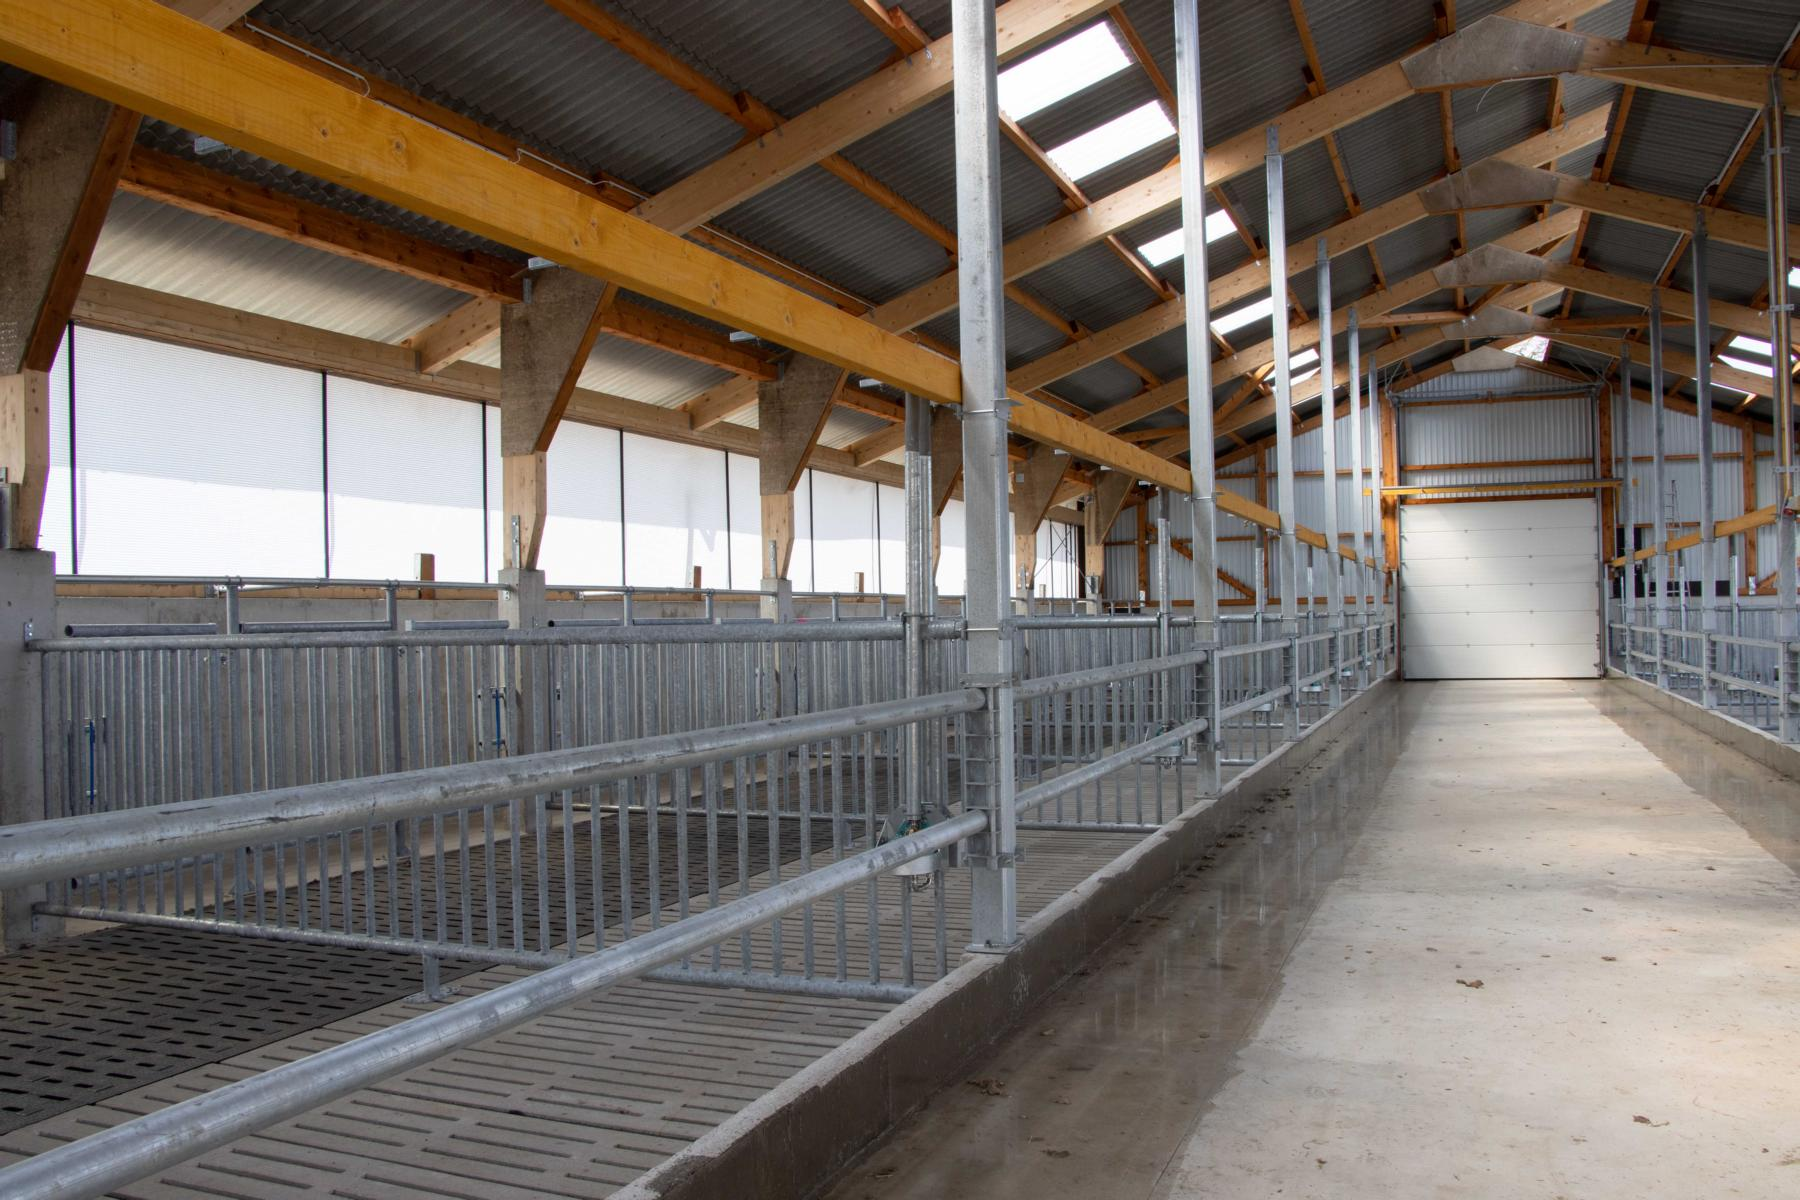 Read more about the article Germing Neubau Bullenstall